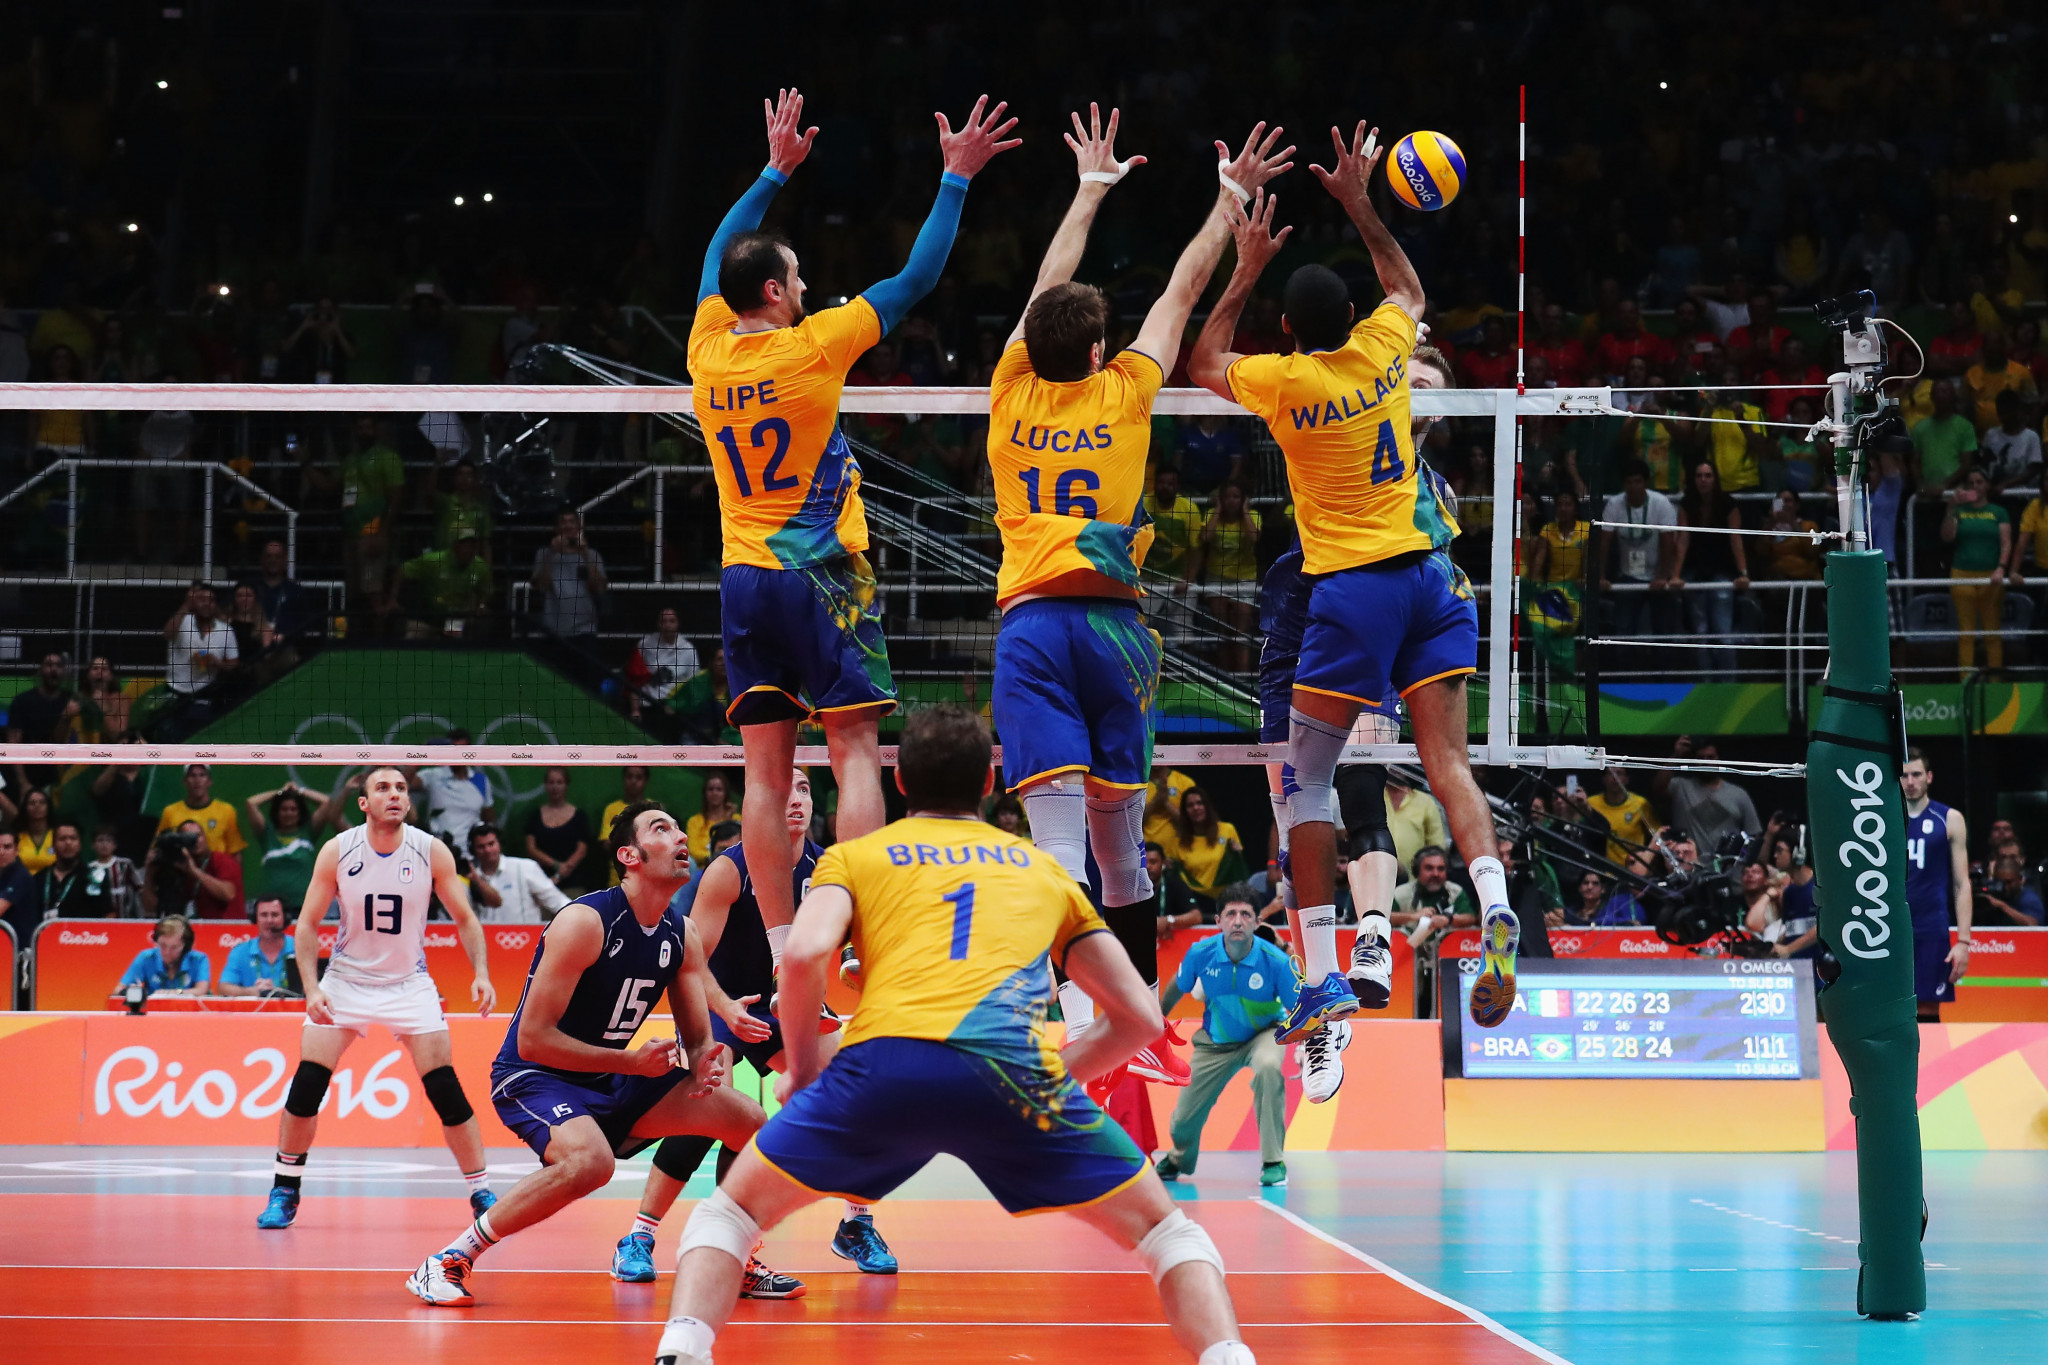 Brazil target fourth consecutive FIVB Men's World Grand Champions Cup title